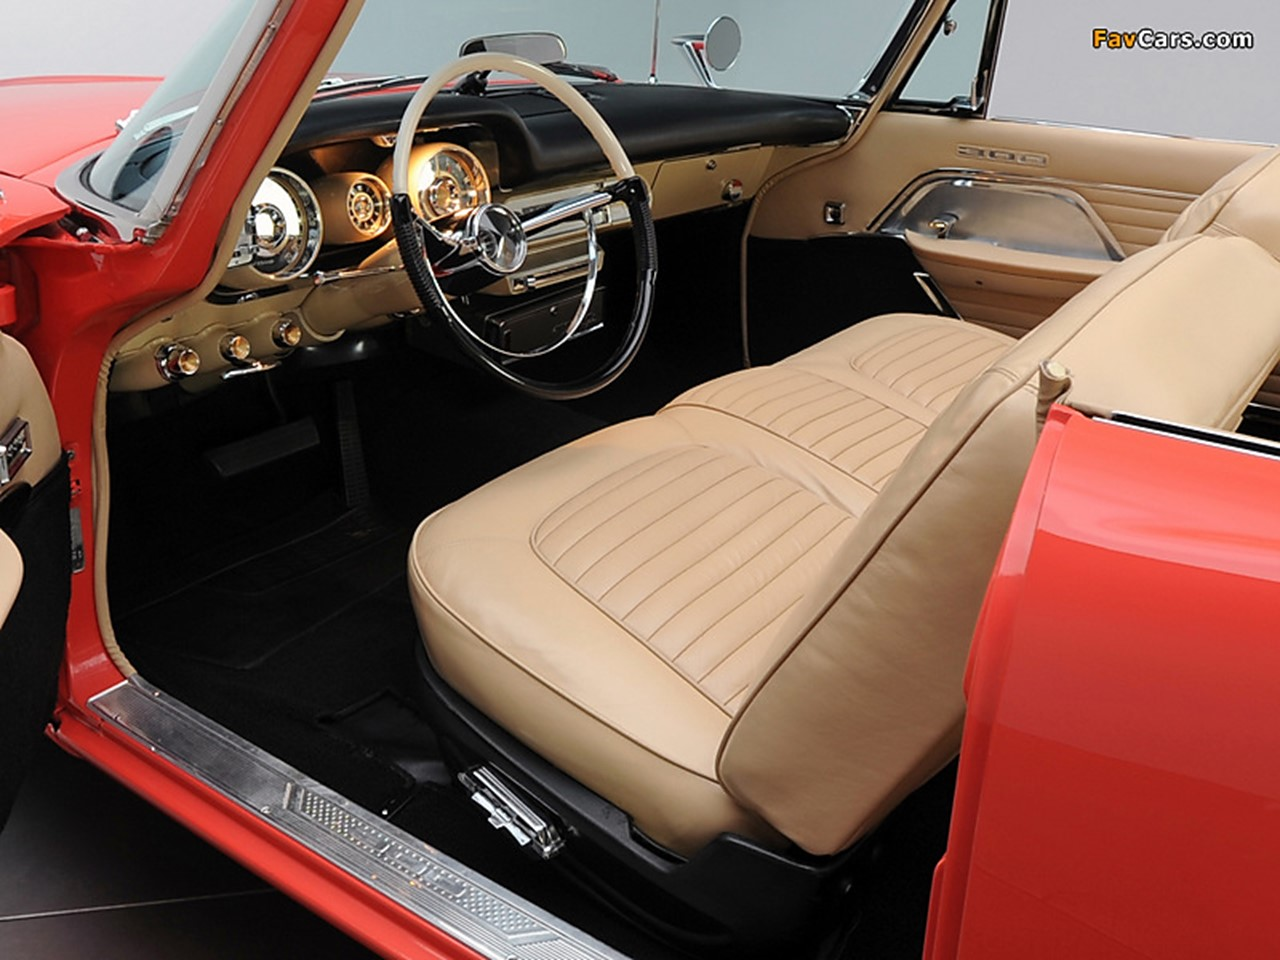 1957 Chrysler 300C convt 17